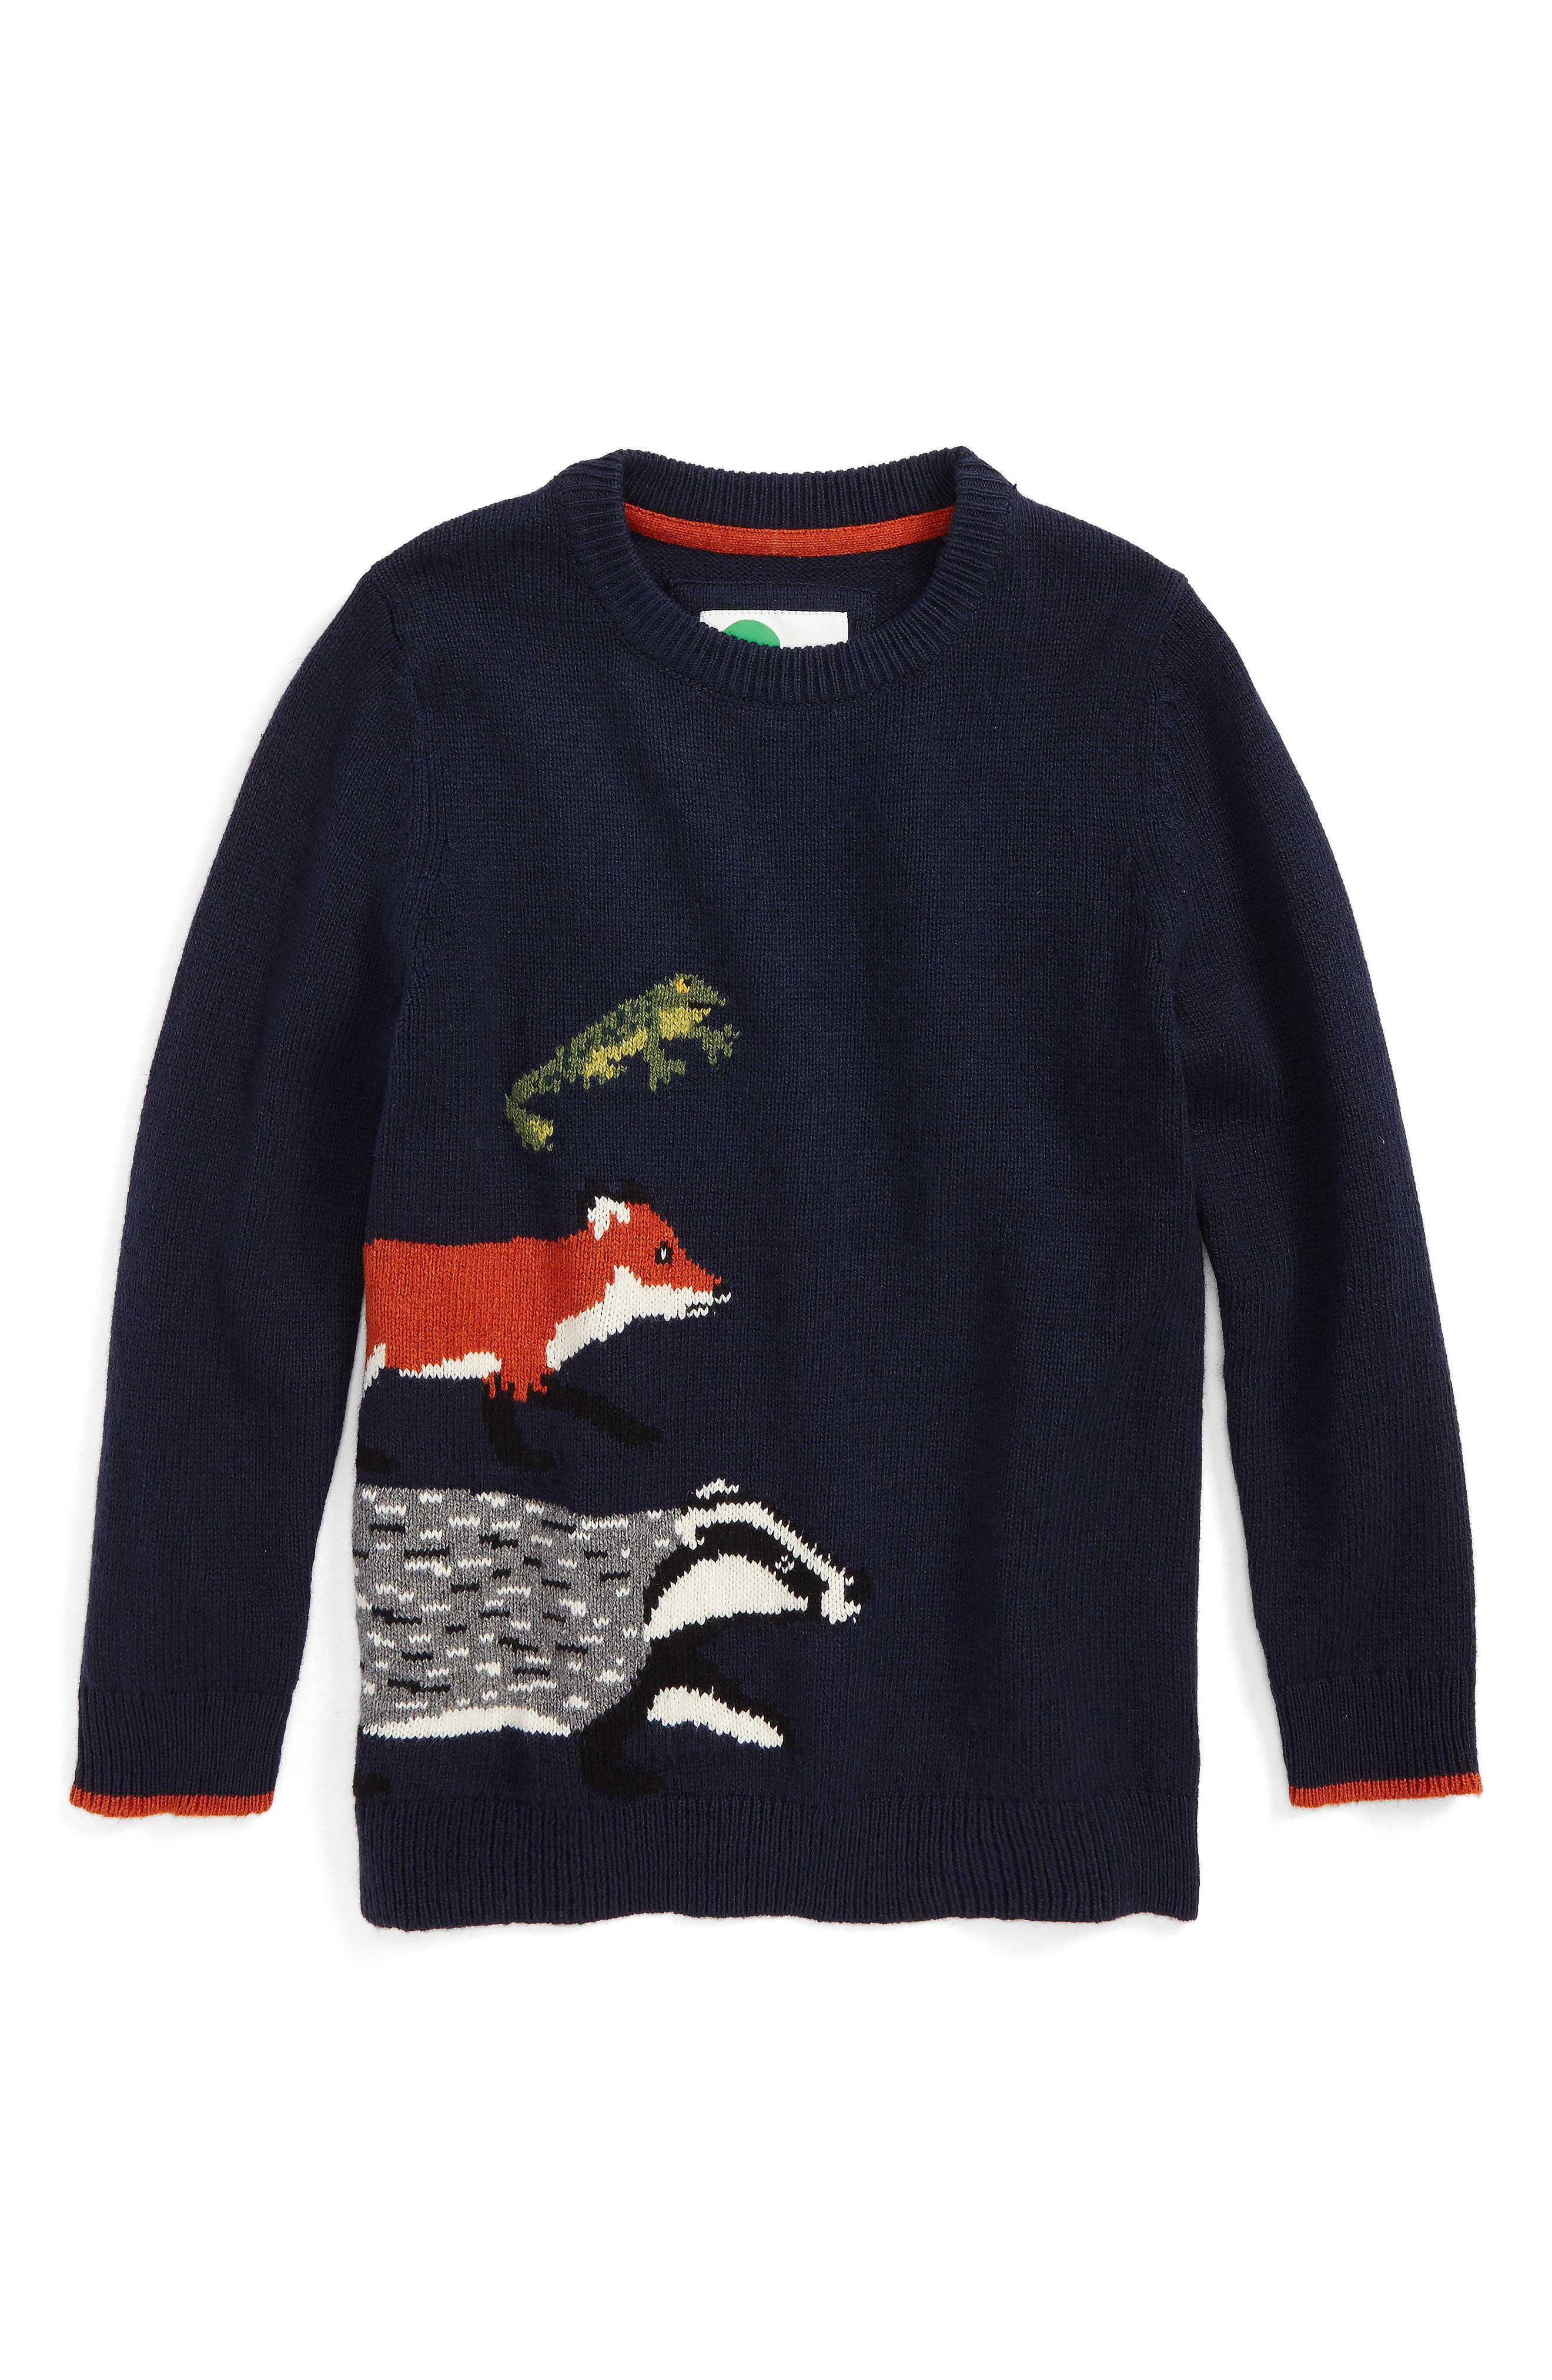 Mini Boden Wild Adventure Intarsia Sweater (Toddler Boys, Little Boys & Big Boys)